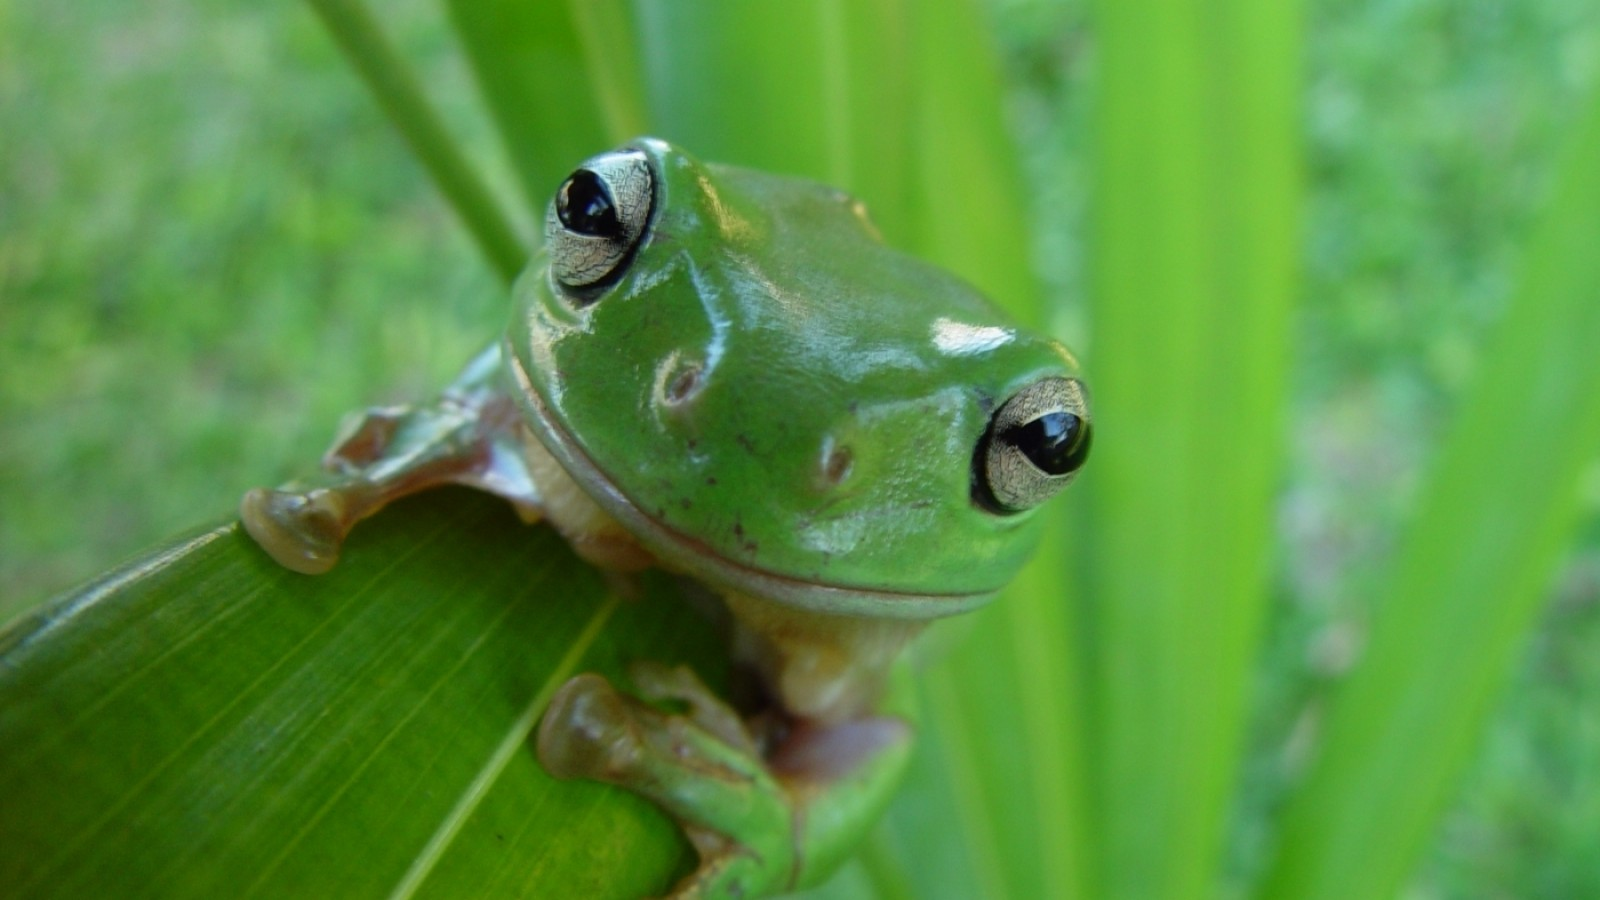 Android Phones Wallpapers: Android Wallpaper Frog